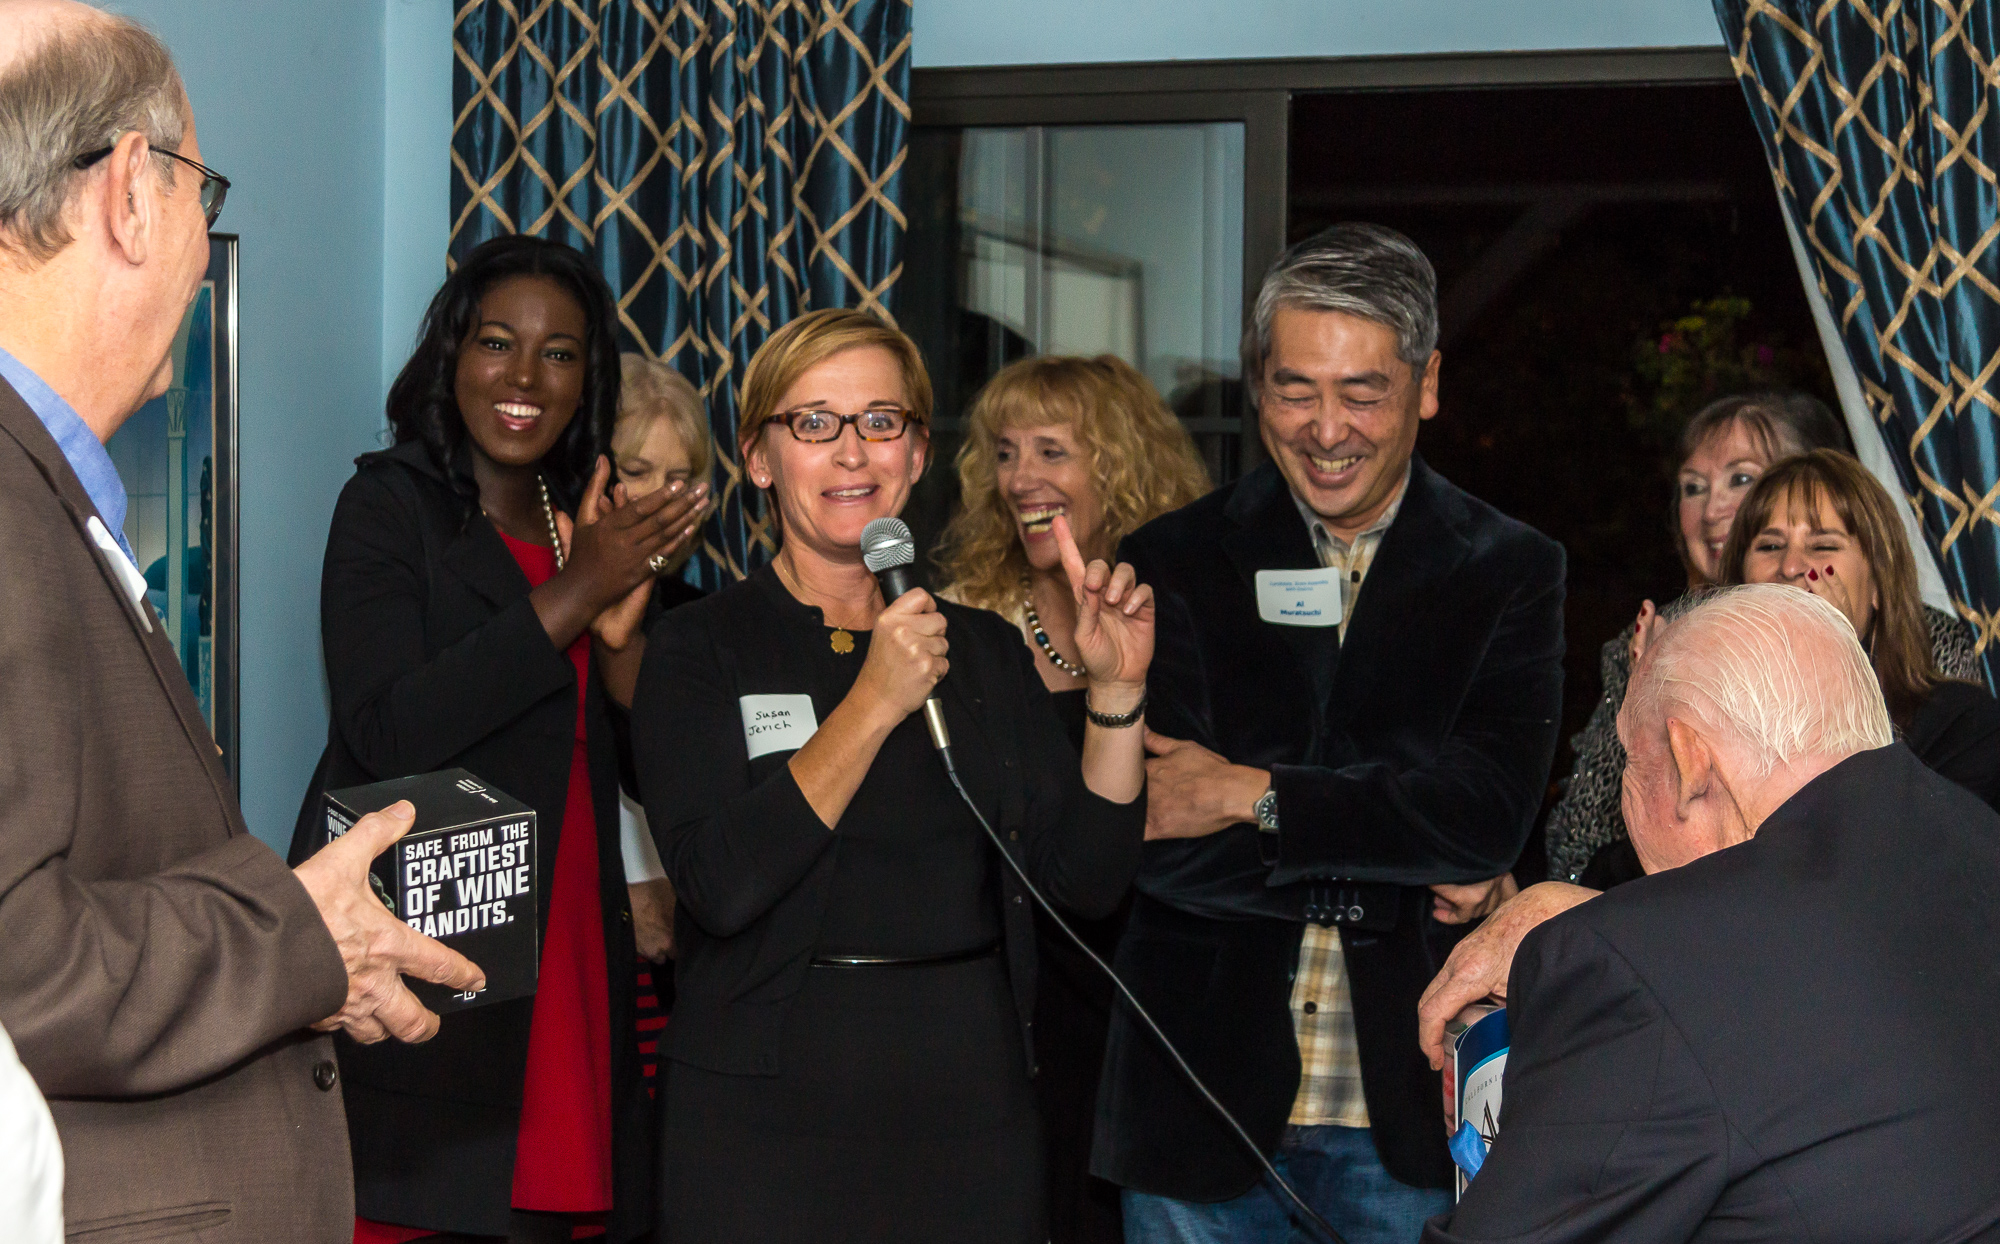 Westchester-Playa Democratic Club Holiday Party 2015 -40.jpg